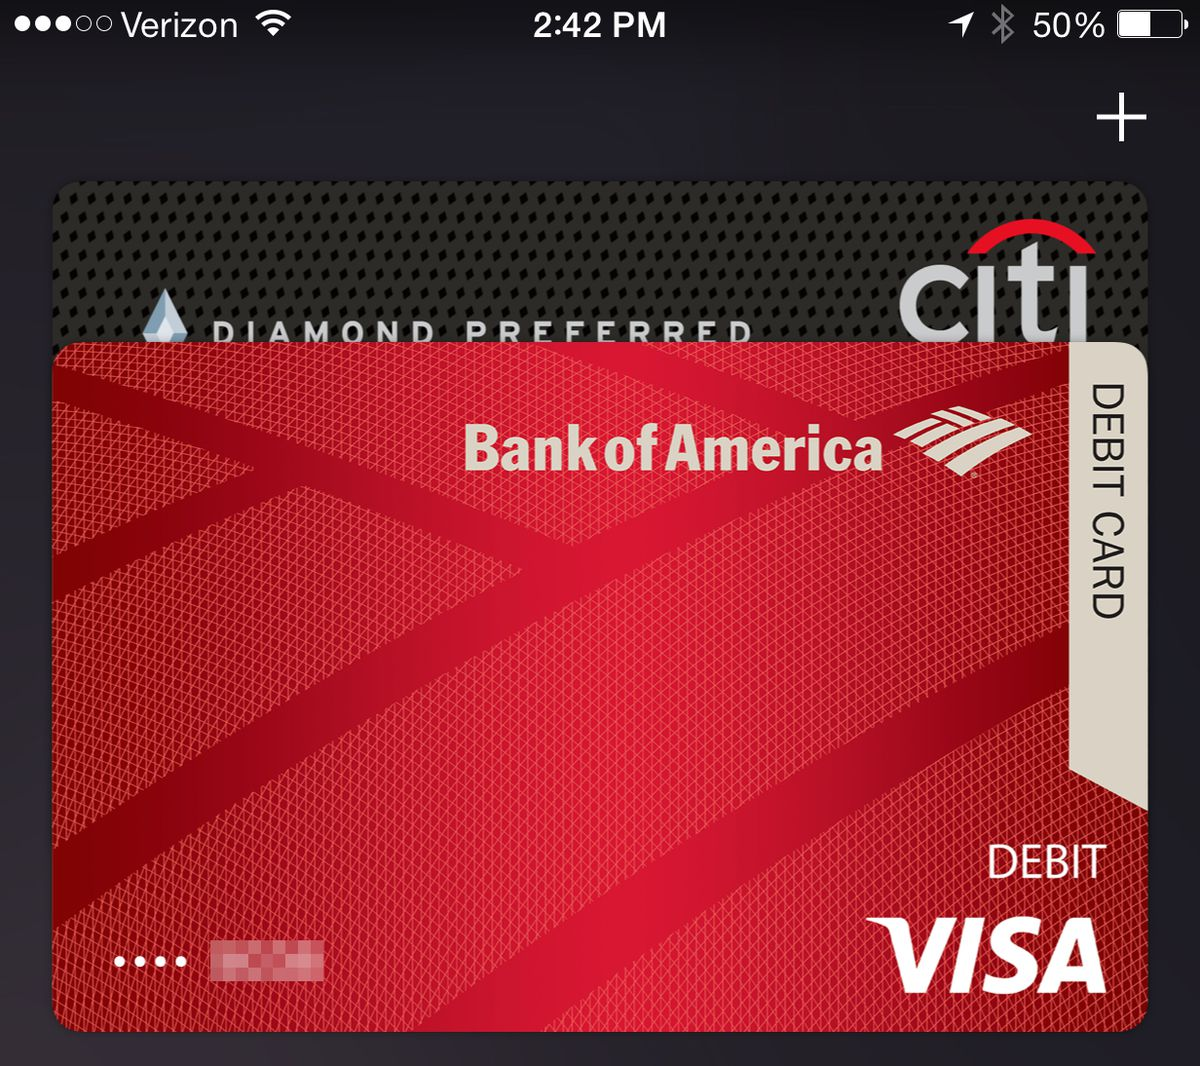 Some Early Apple Pay Users Hit With Duplicate Charges